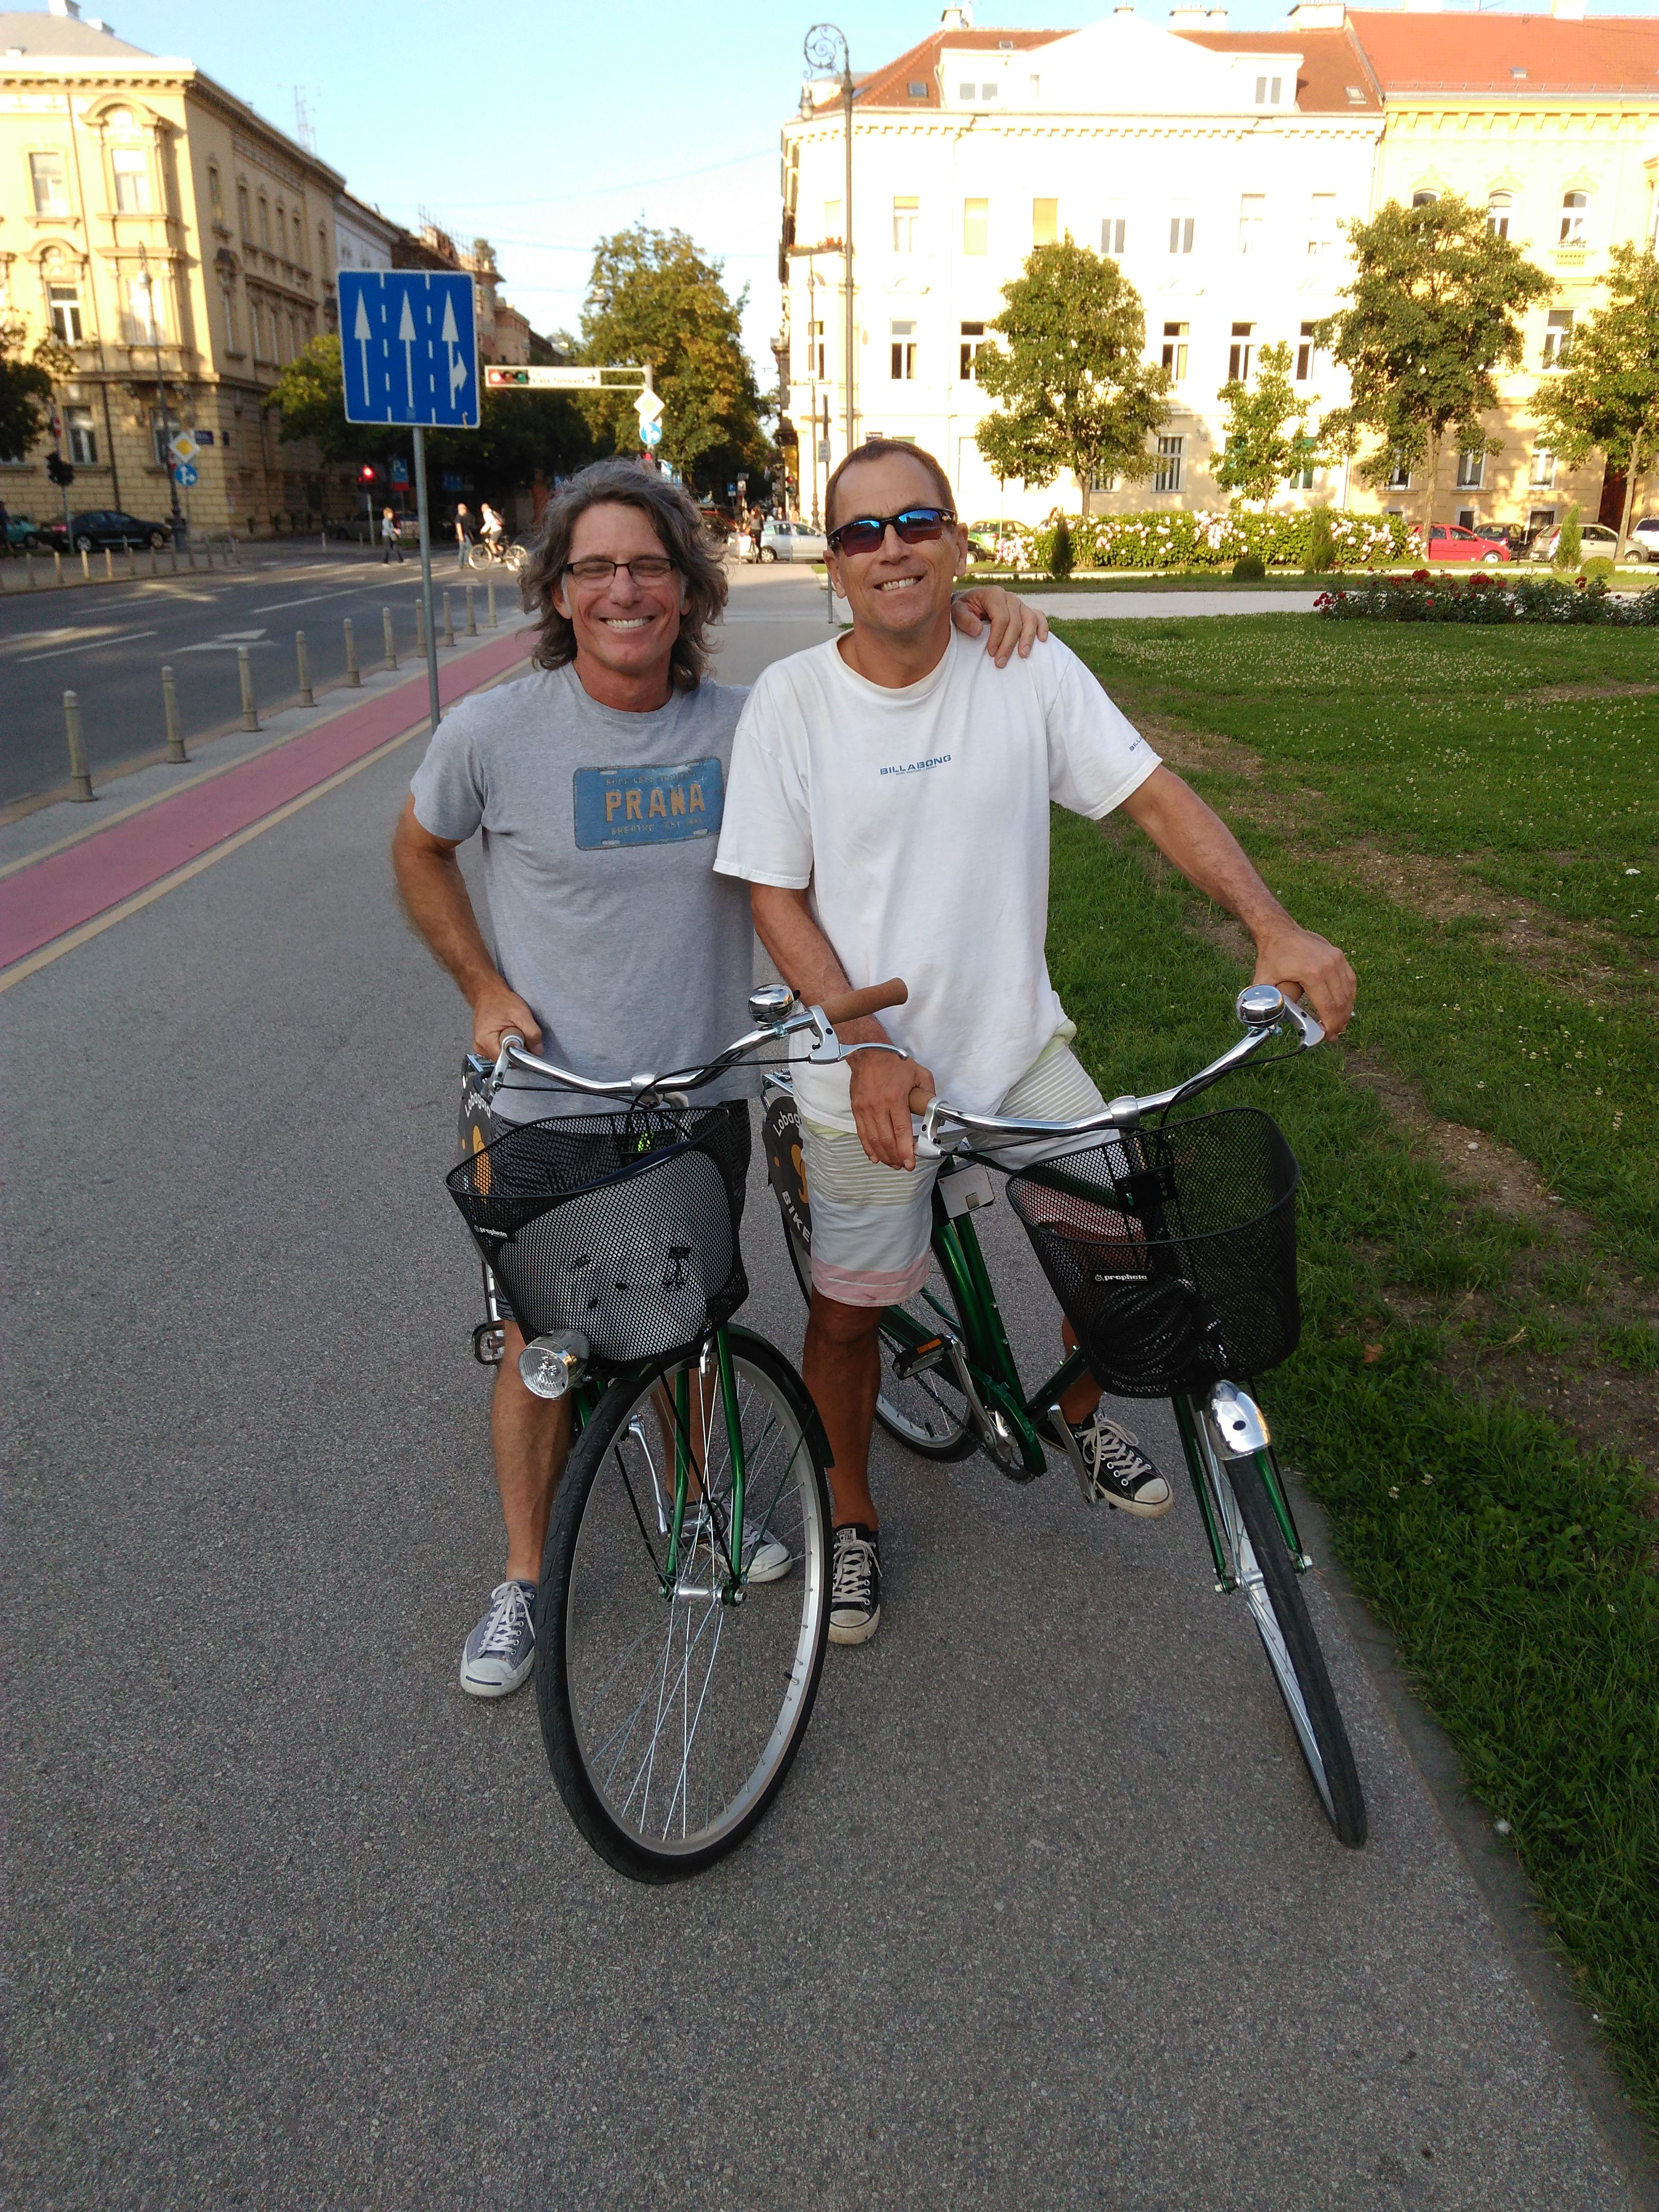 Tim and Gene joined us on our Daily tour around Zagreb. In a few hours of exciting pedaling they saw and learned everything important about our city #lobagolabnb #zagreb #croatia #bike #tours #lobagolaadventure #bicycle #cycling #yellowelephant #1city2wheels #bikeZg #lobagolatours